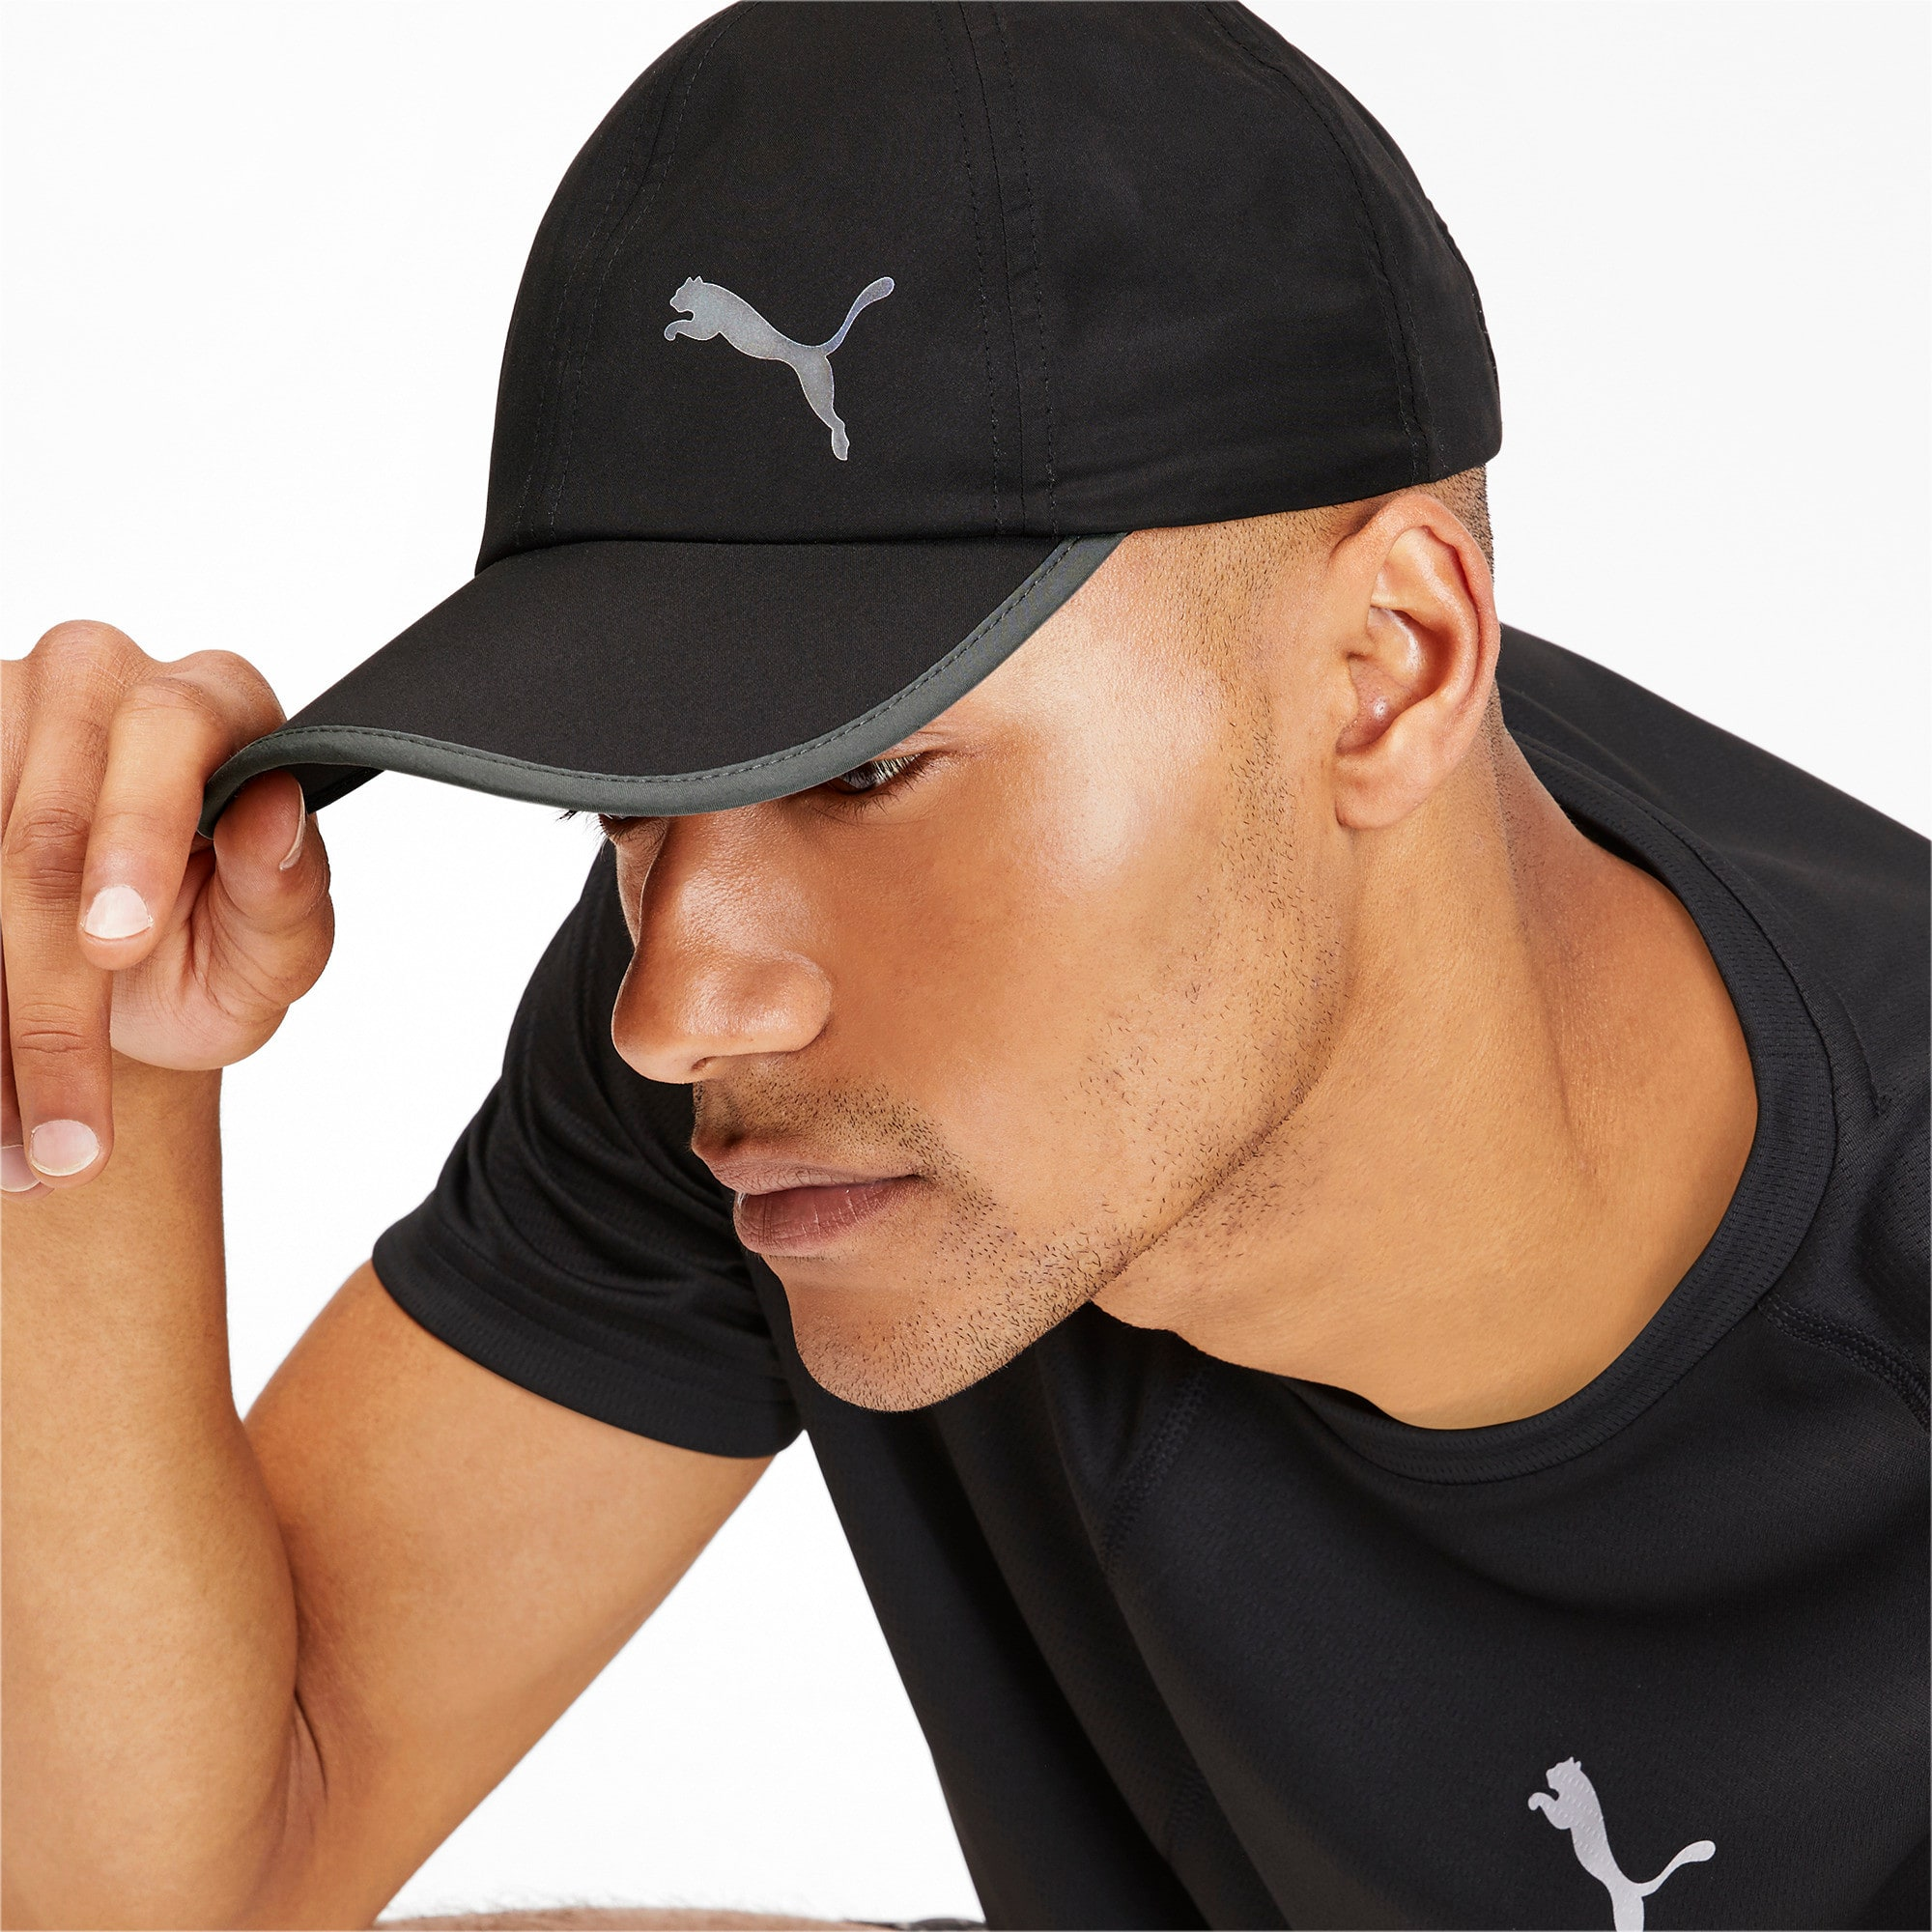 Thumbnail 2 of ESS Running Cap, Puma Black-Cat, medium